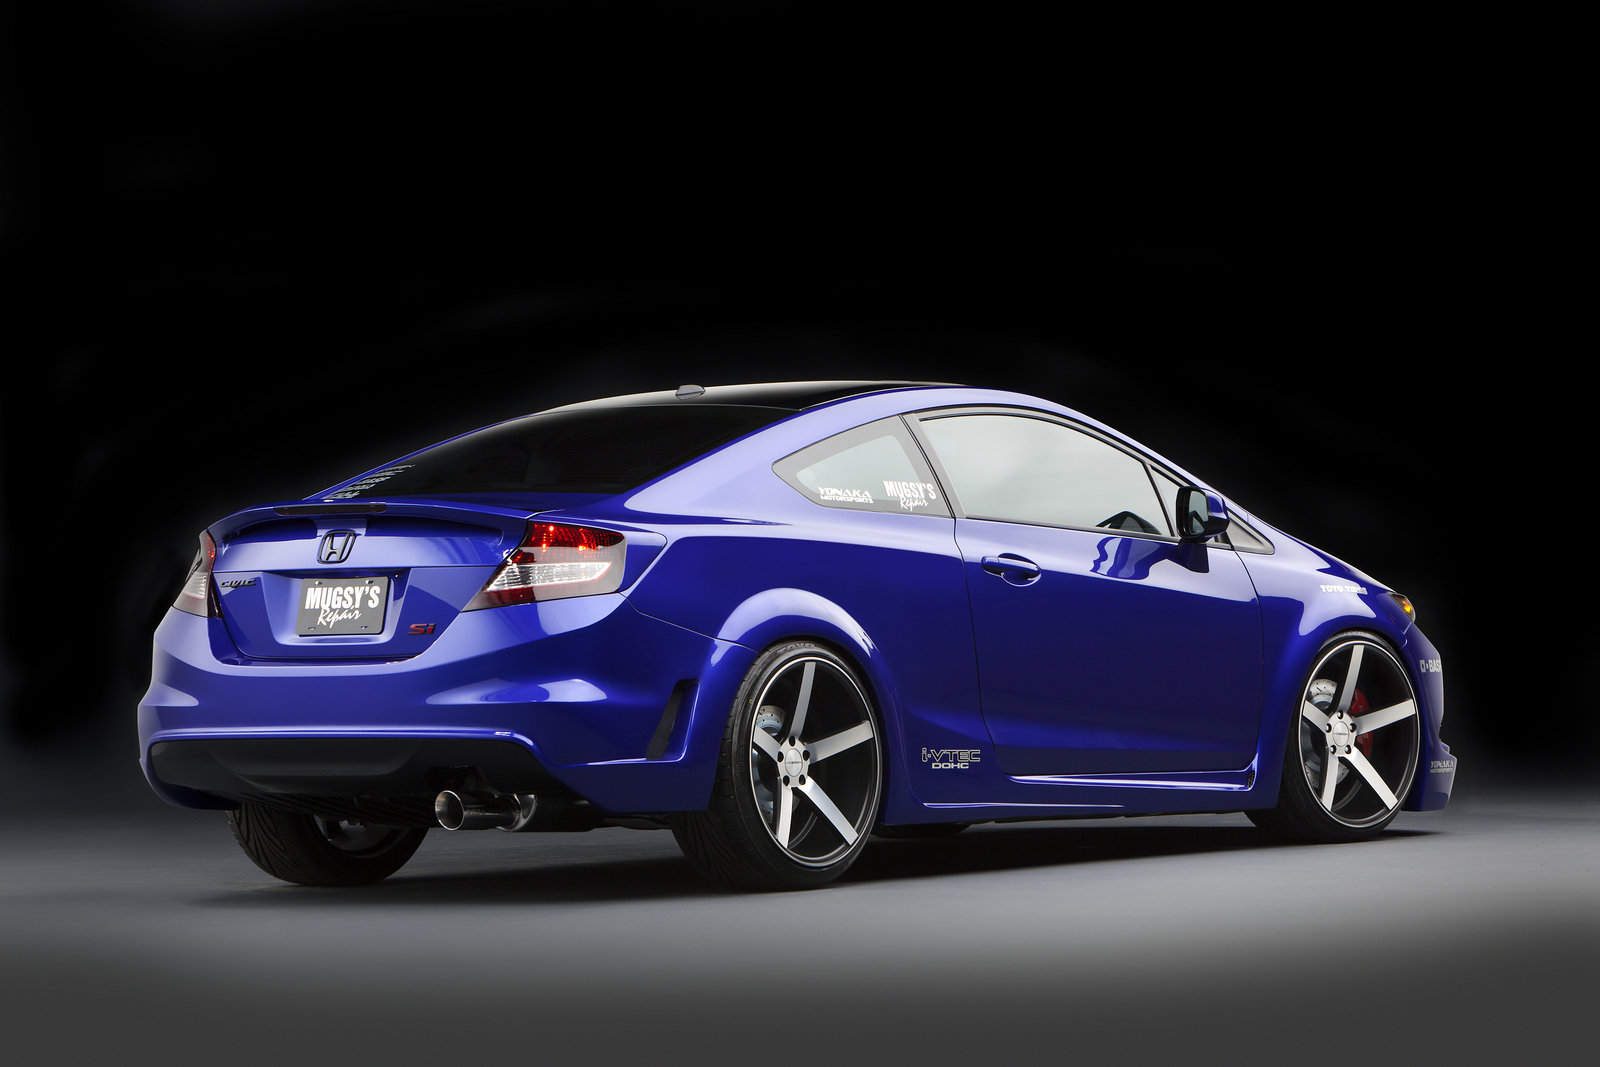 2012 Honda Civic Si Coupe Top Speed  CFA Vauban du Btiment